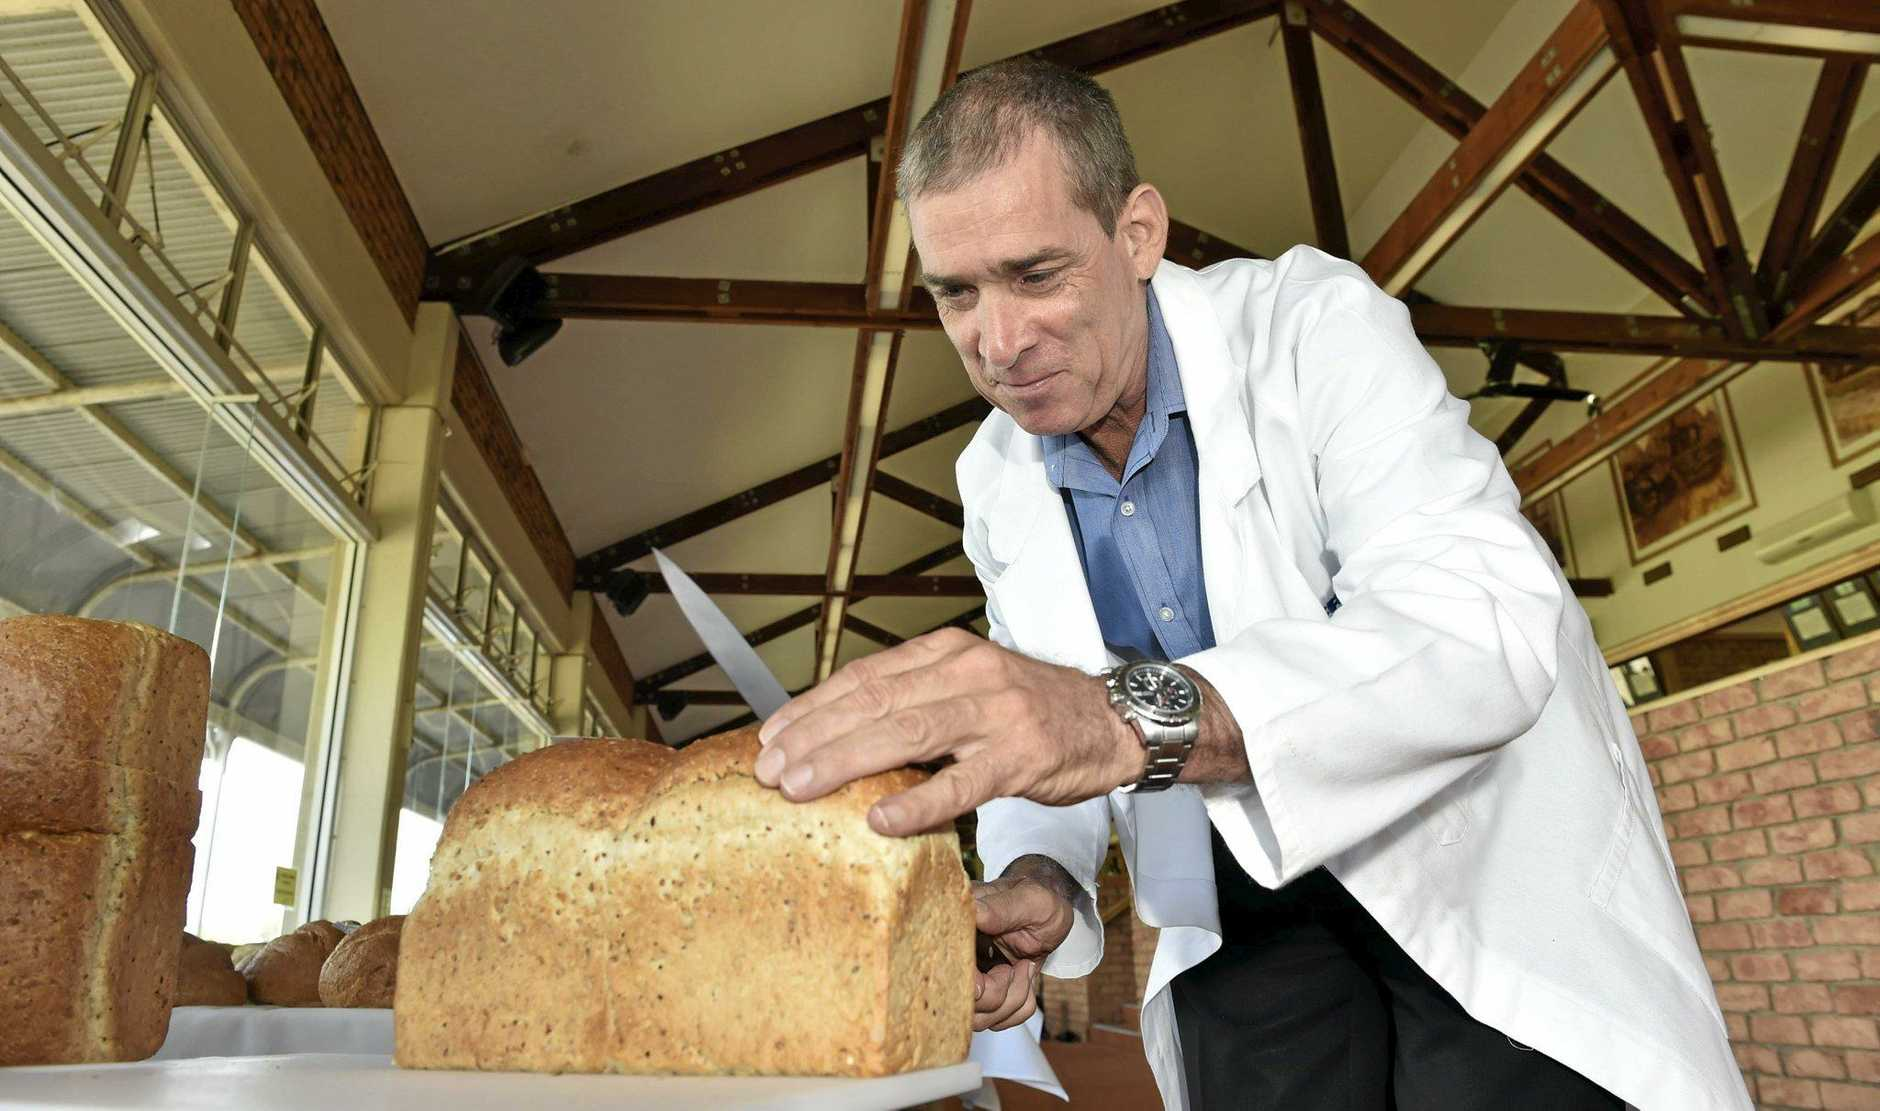 Judge Brad Dance.Toowoomba Show 2016. Toowoomba Royal Bread Show. March 11, 2016